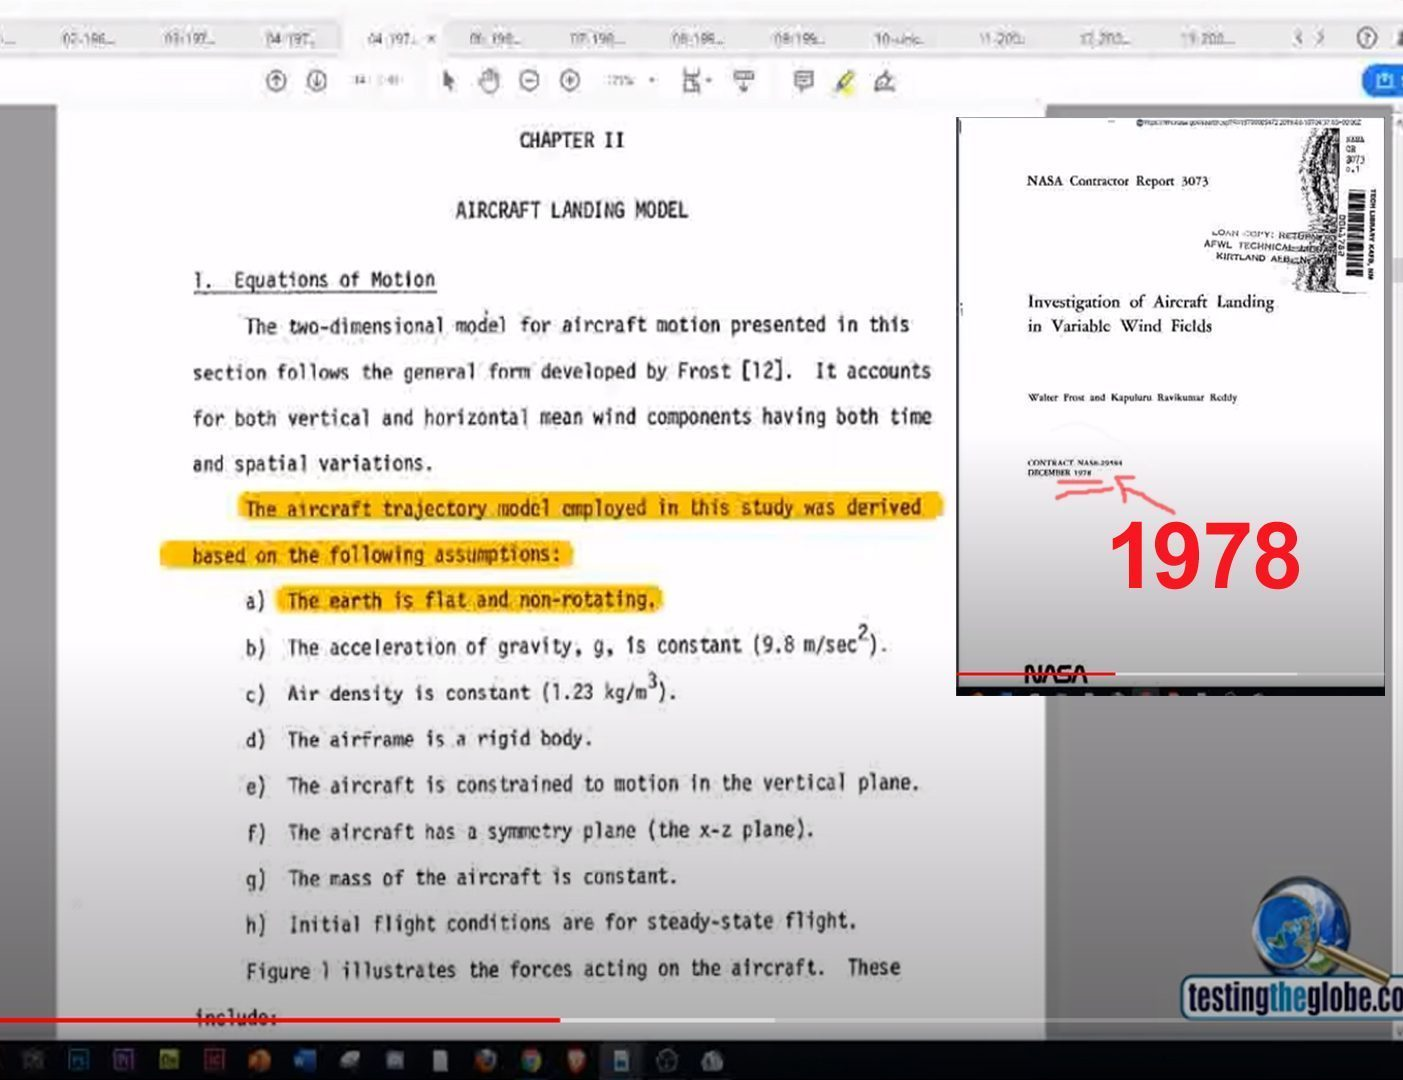 interesting that nasa docs show patents that work on flat earth concept